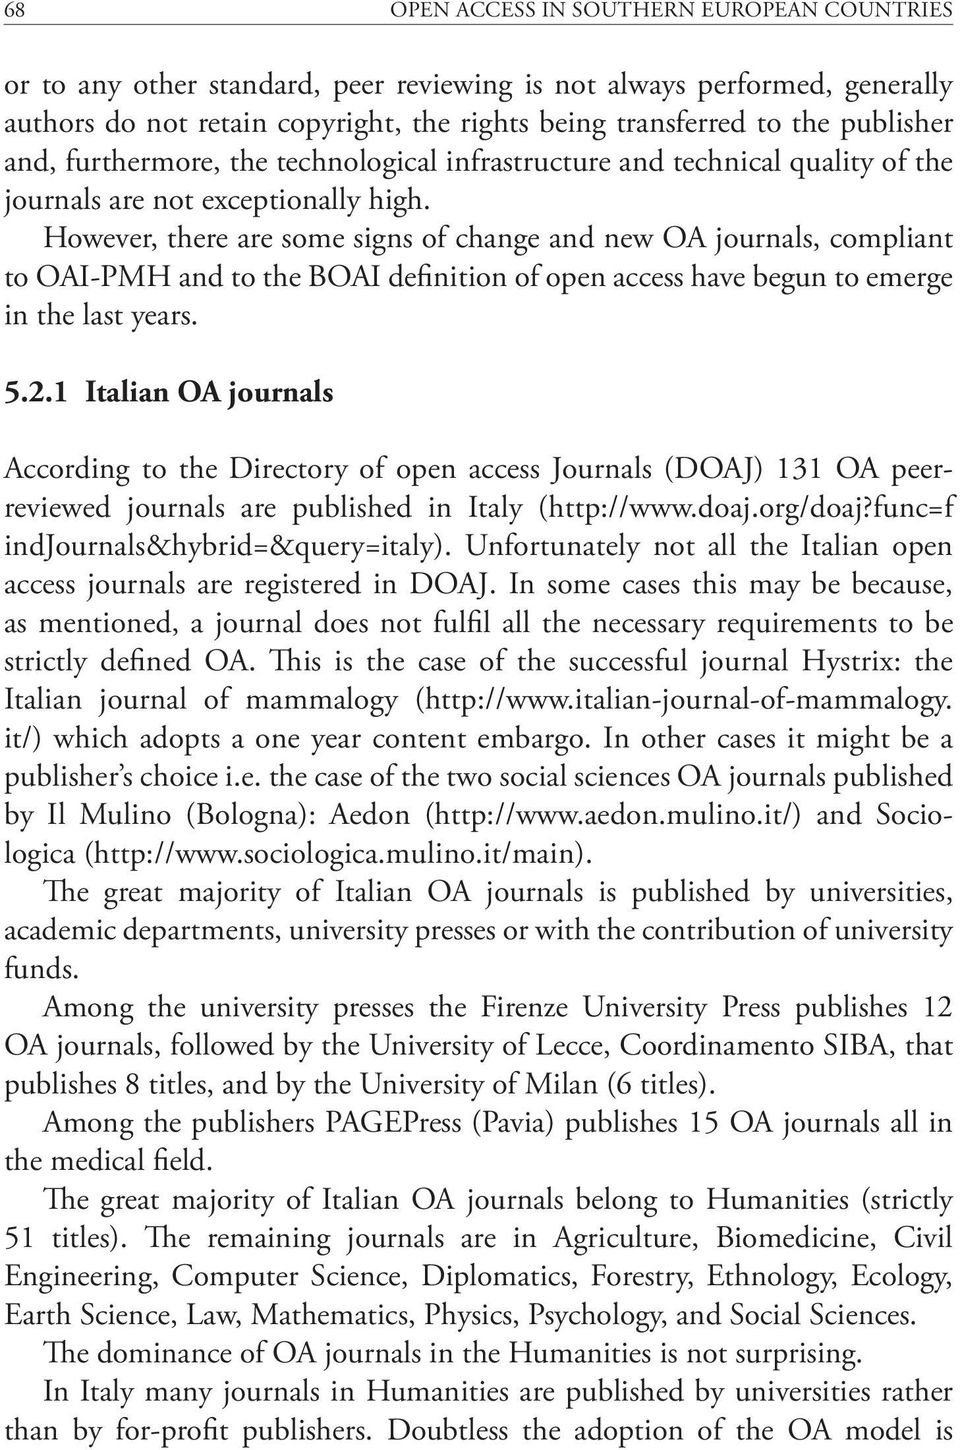 However, there are some signs of change and new OA journals, compliant to OAI-PMH and to the BOAI definition of open access have begun to emerge in the last years. 5.2.